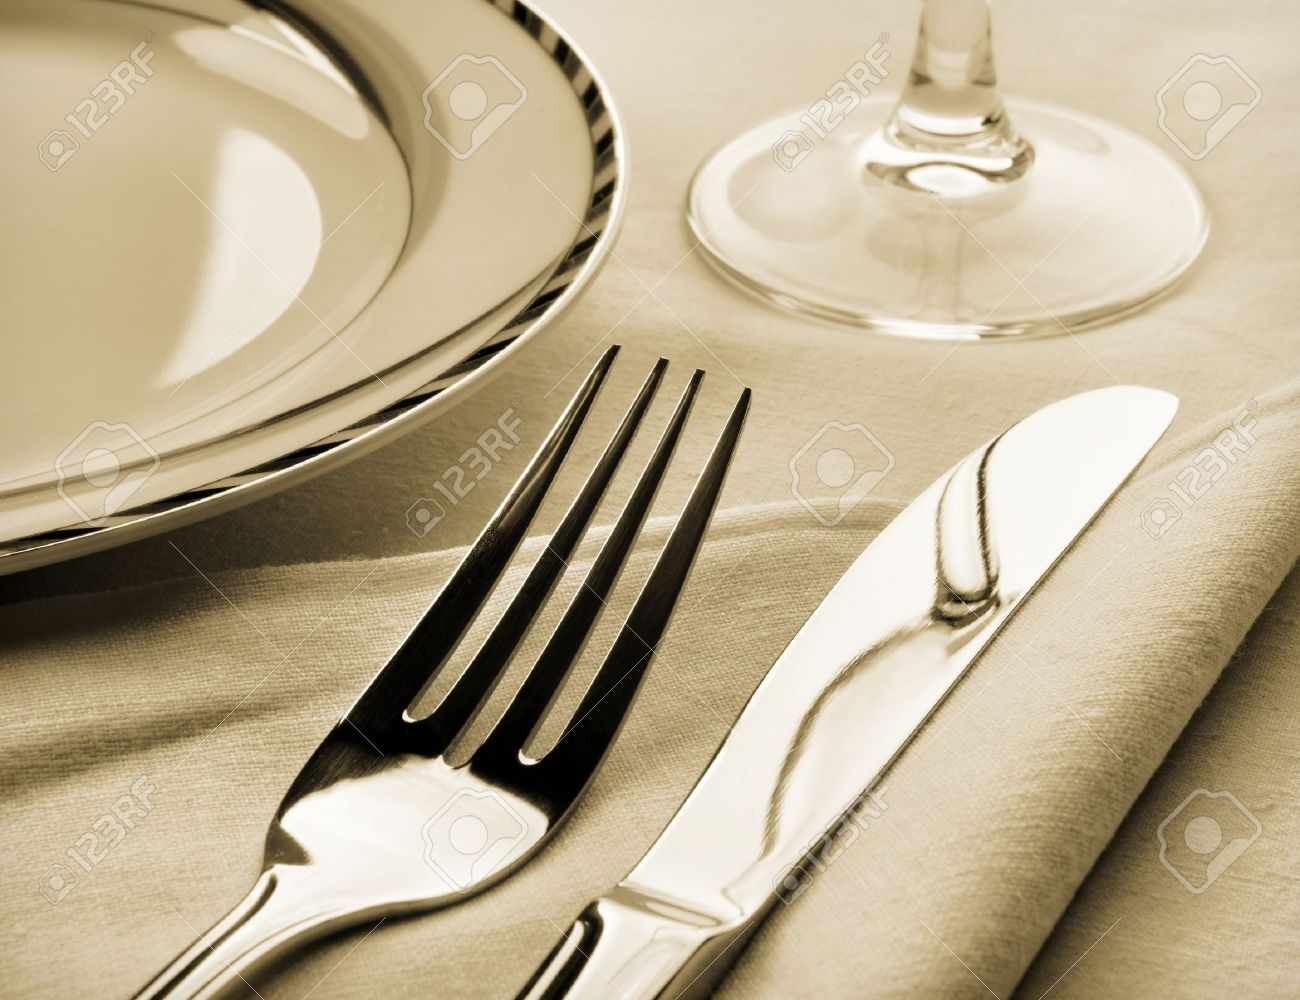 Dinner Setting dinner set. fork and knife on napkin. sepia toned stock photo